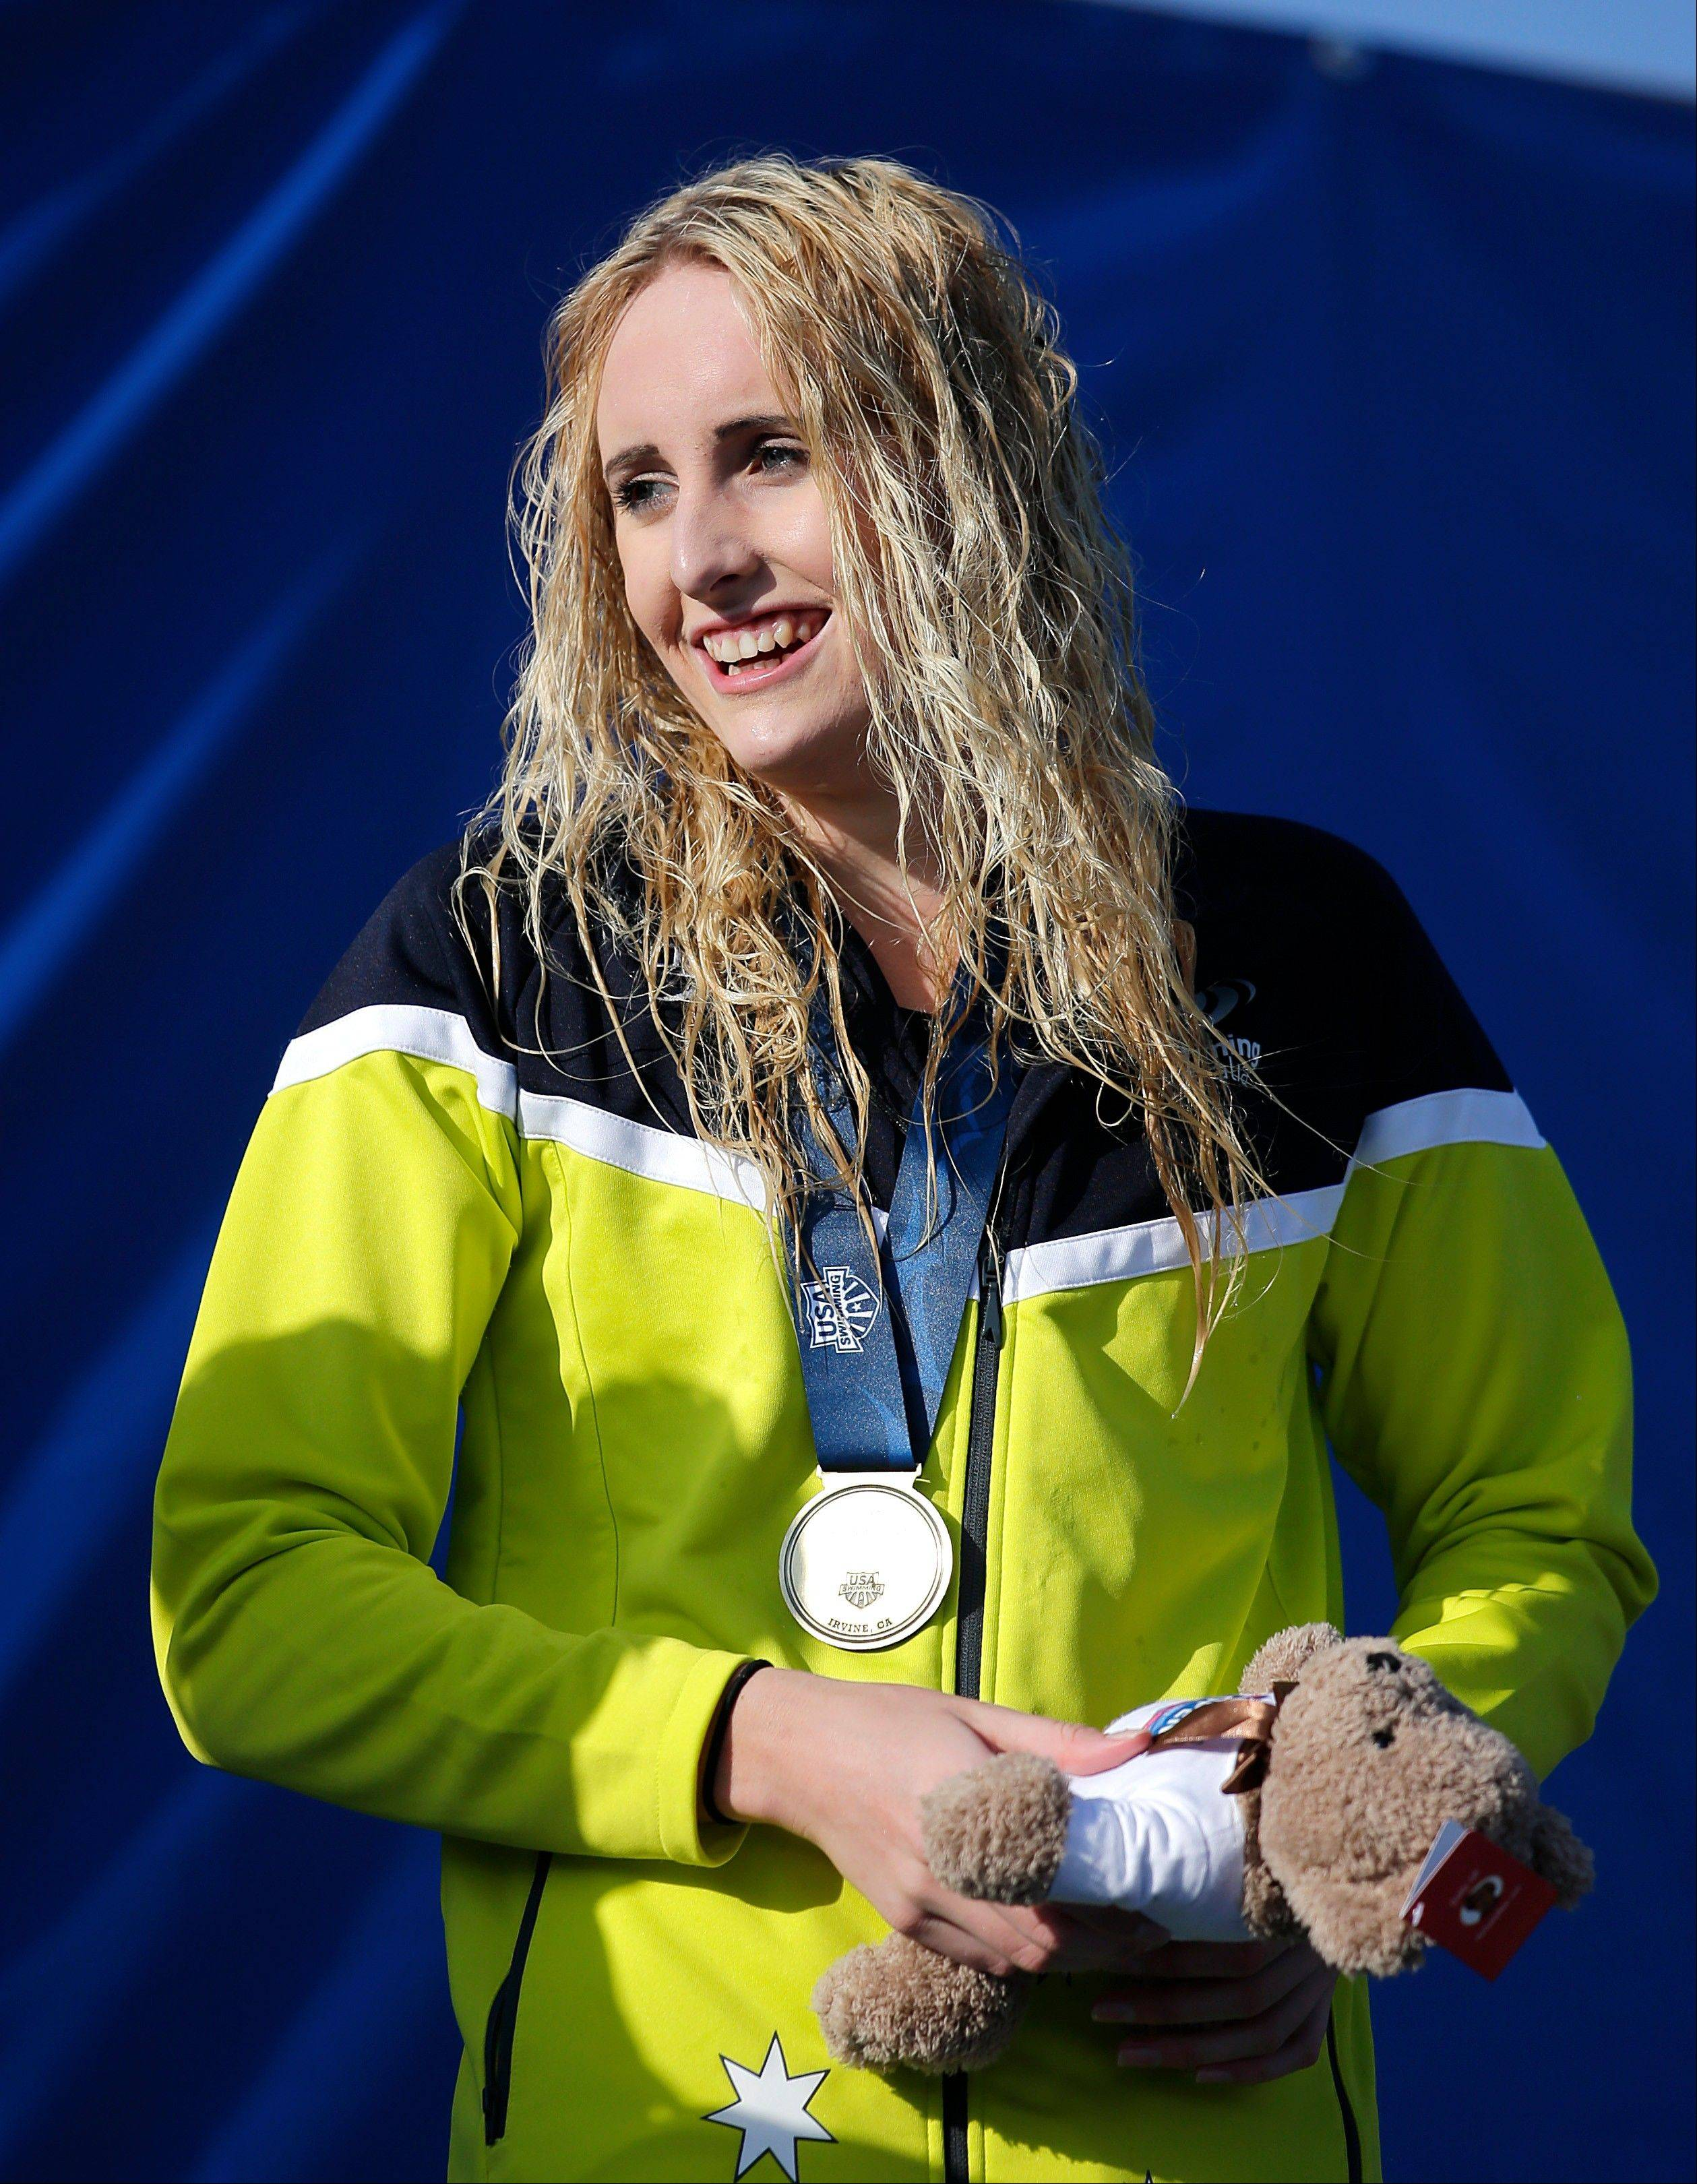 Gold medalist Taylor McKeown, of Australia, smiles during an awards ceremony for the women's 200-meter breaststroke final at the U.S. Open Swimming Championships, Wednesday, July 31, 2013, in Irvine, Calif.